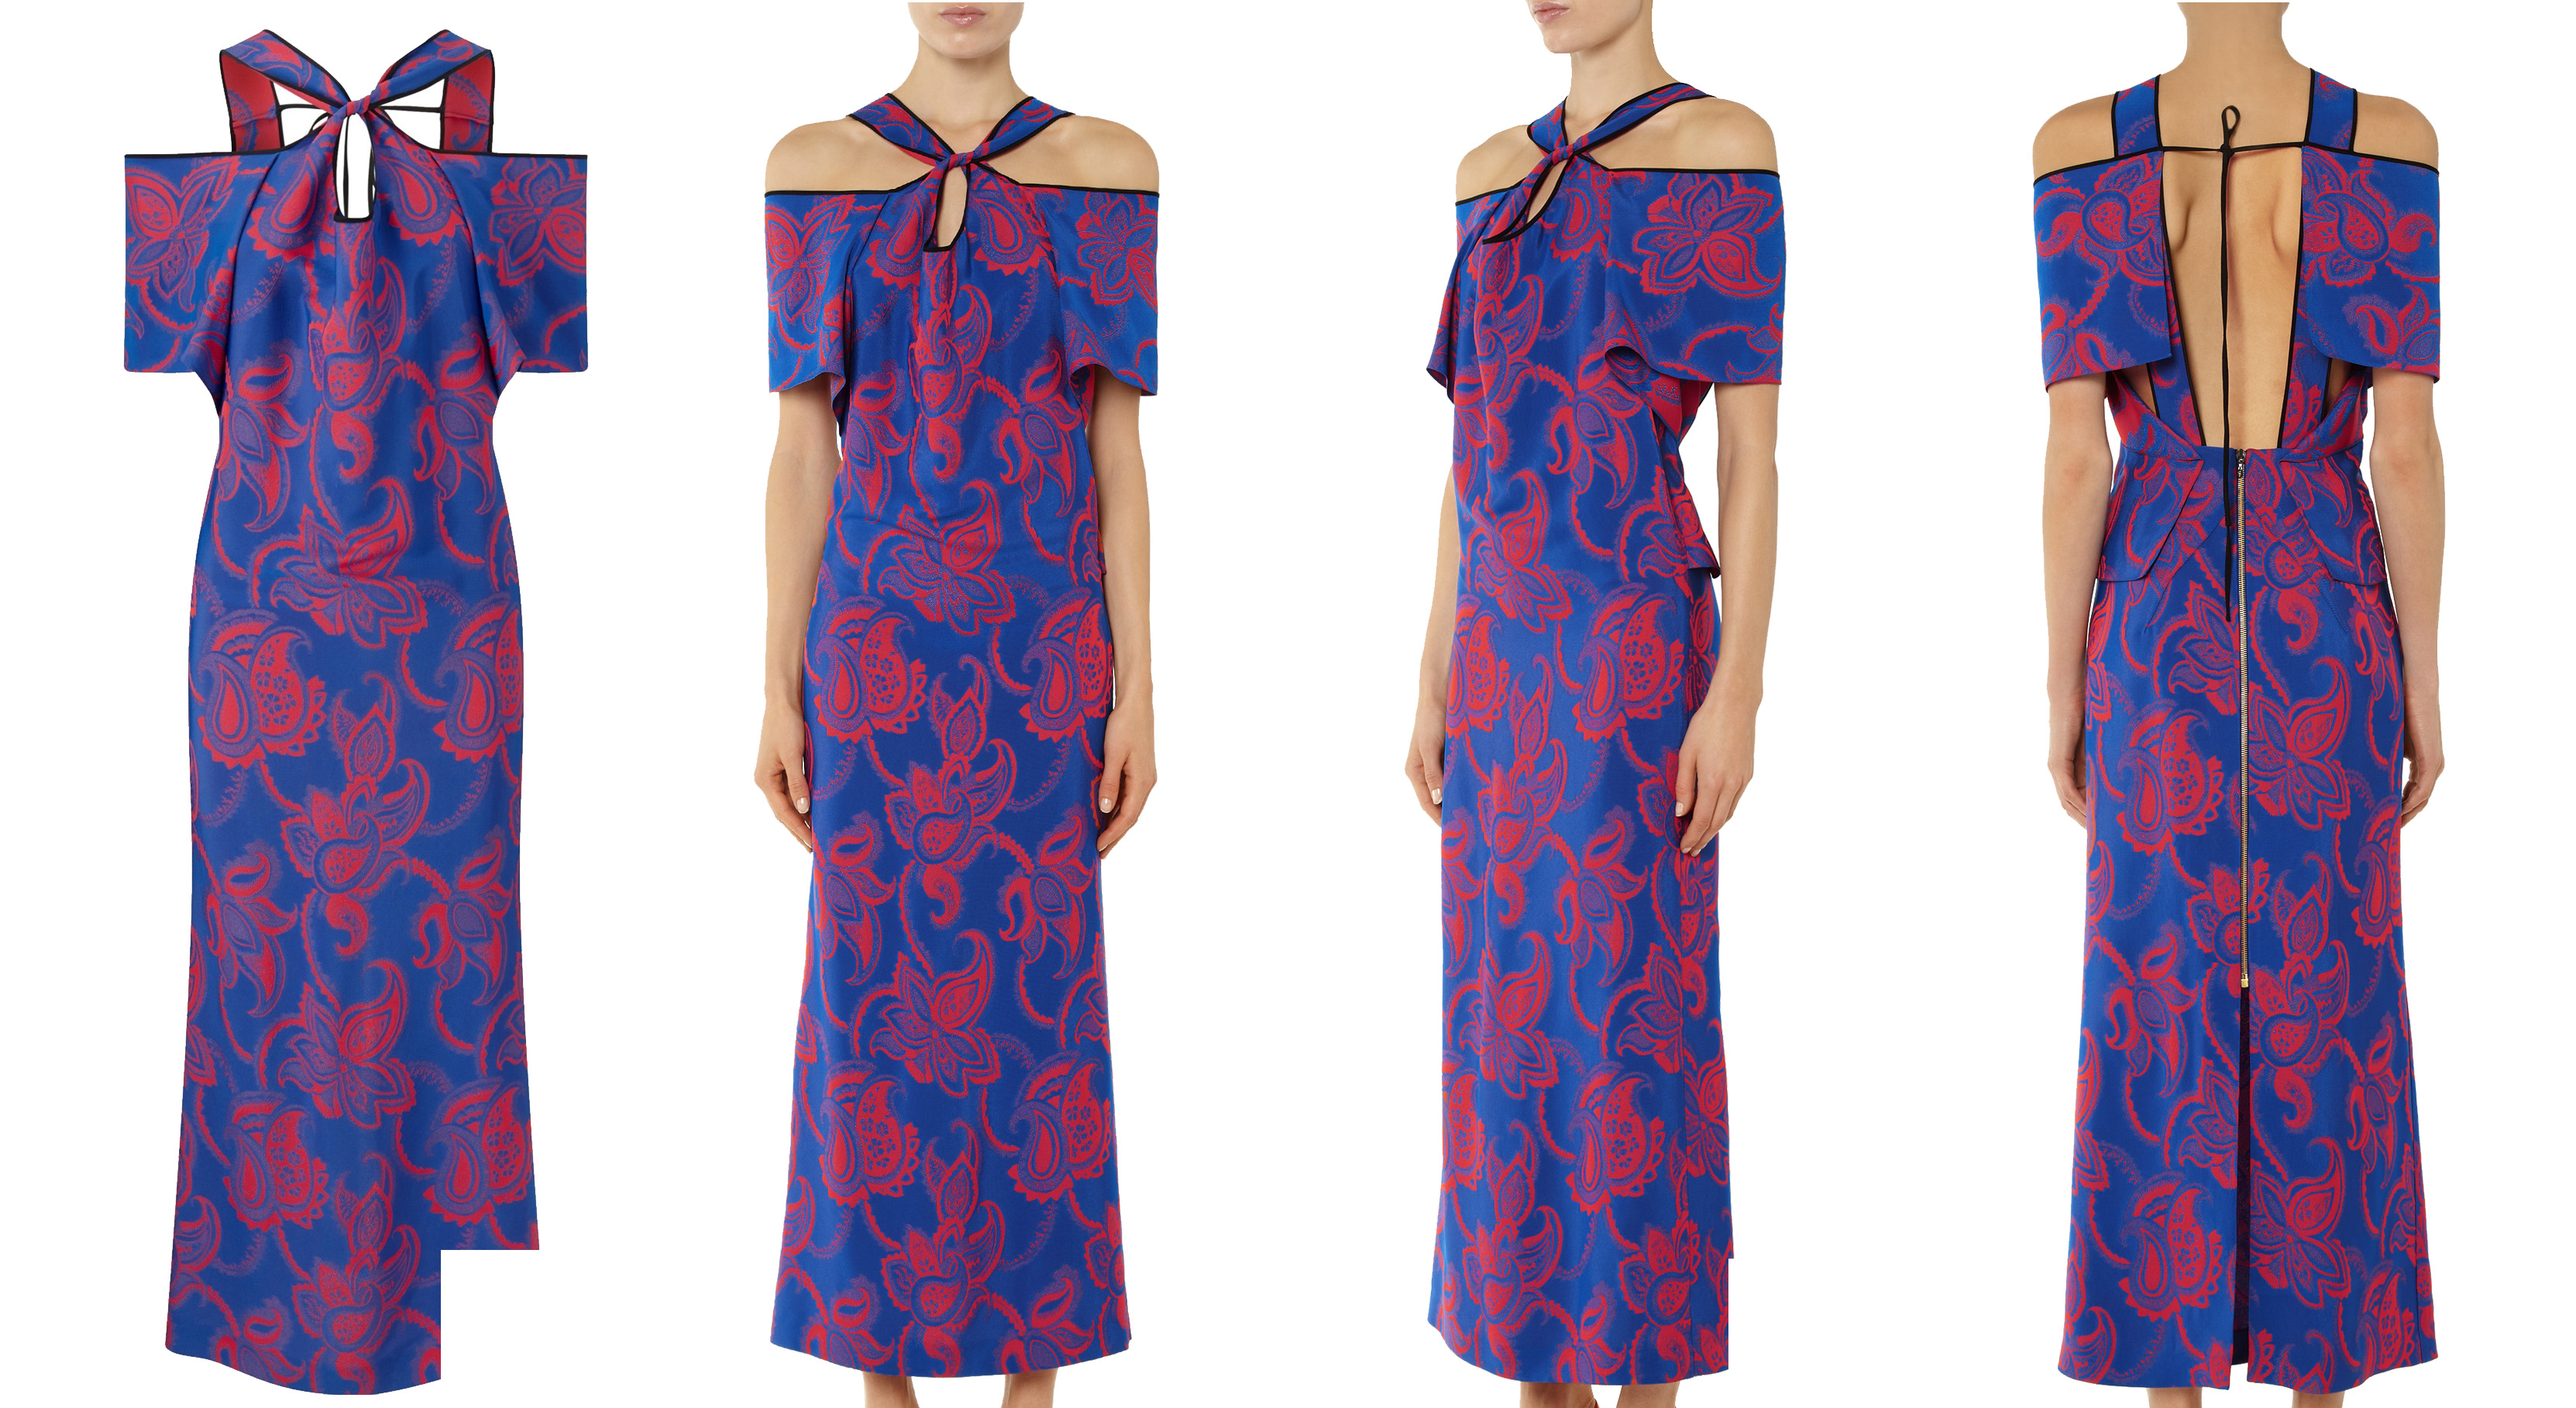 Roland Mouret Cliffon dress tomato red and lapis blue paisley jacquard